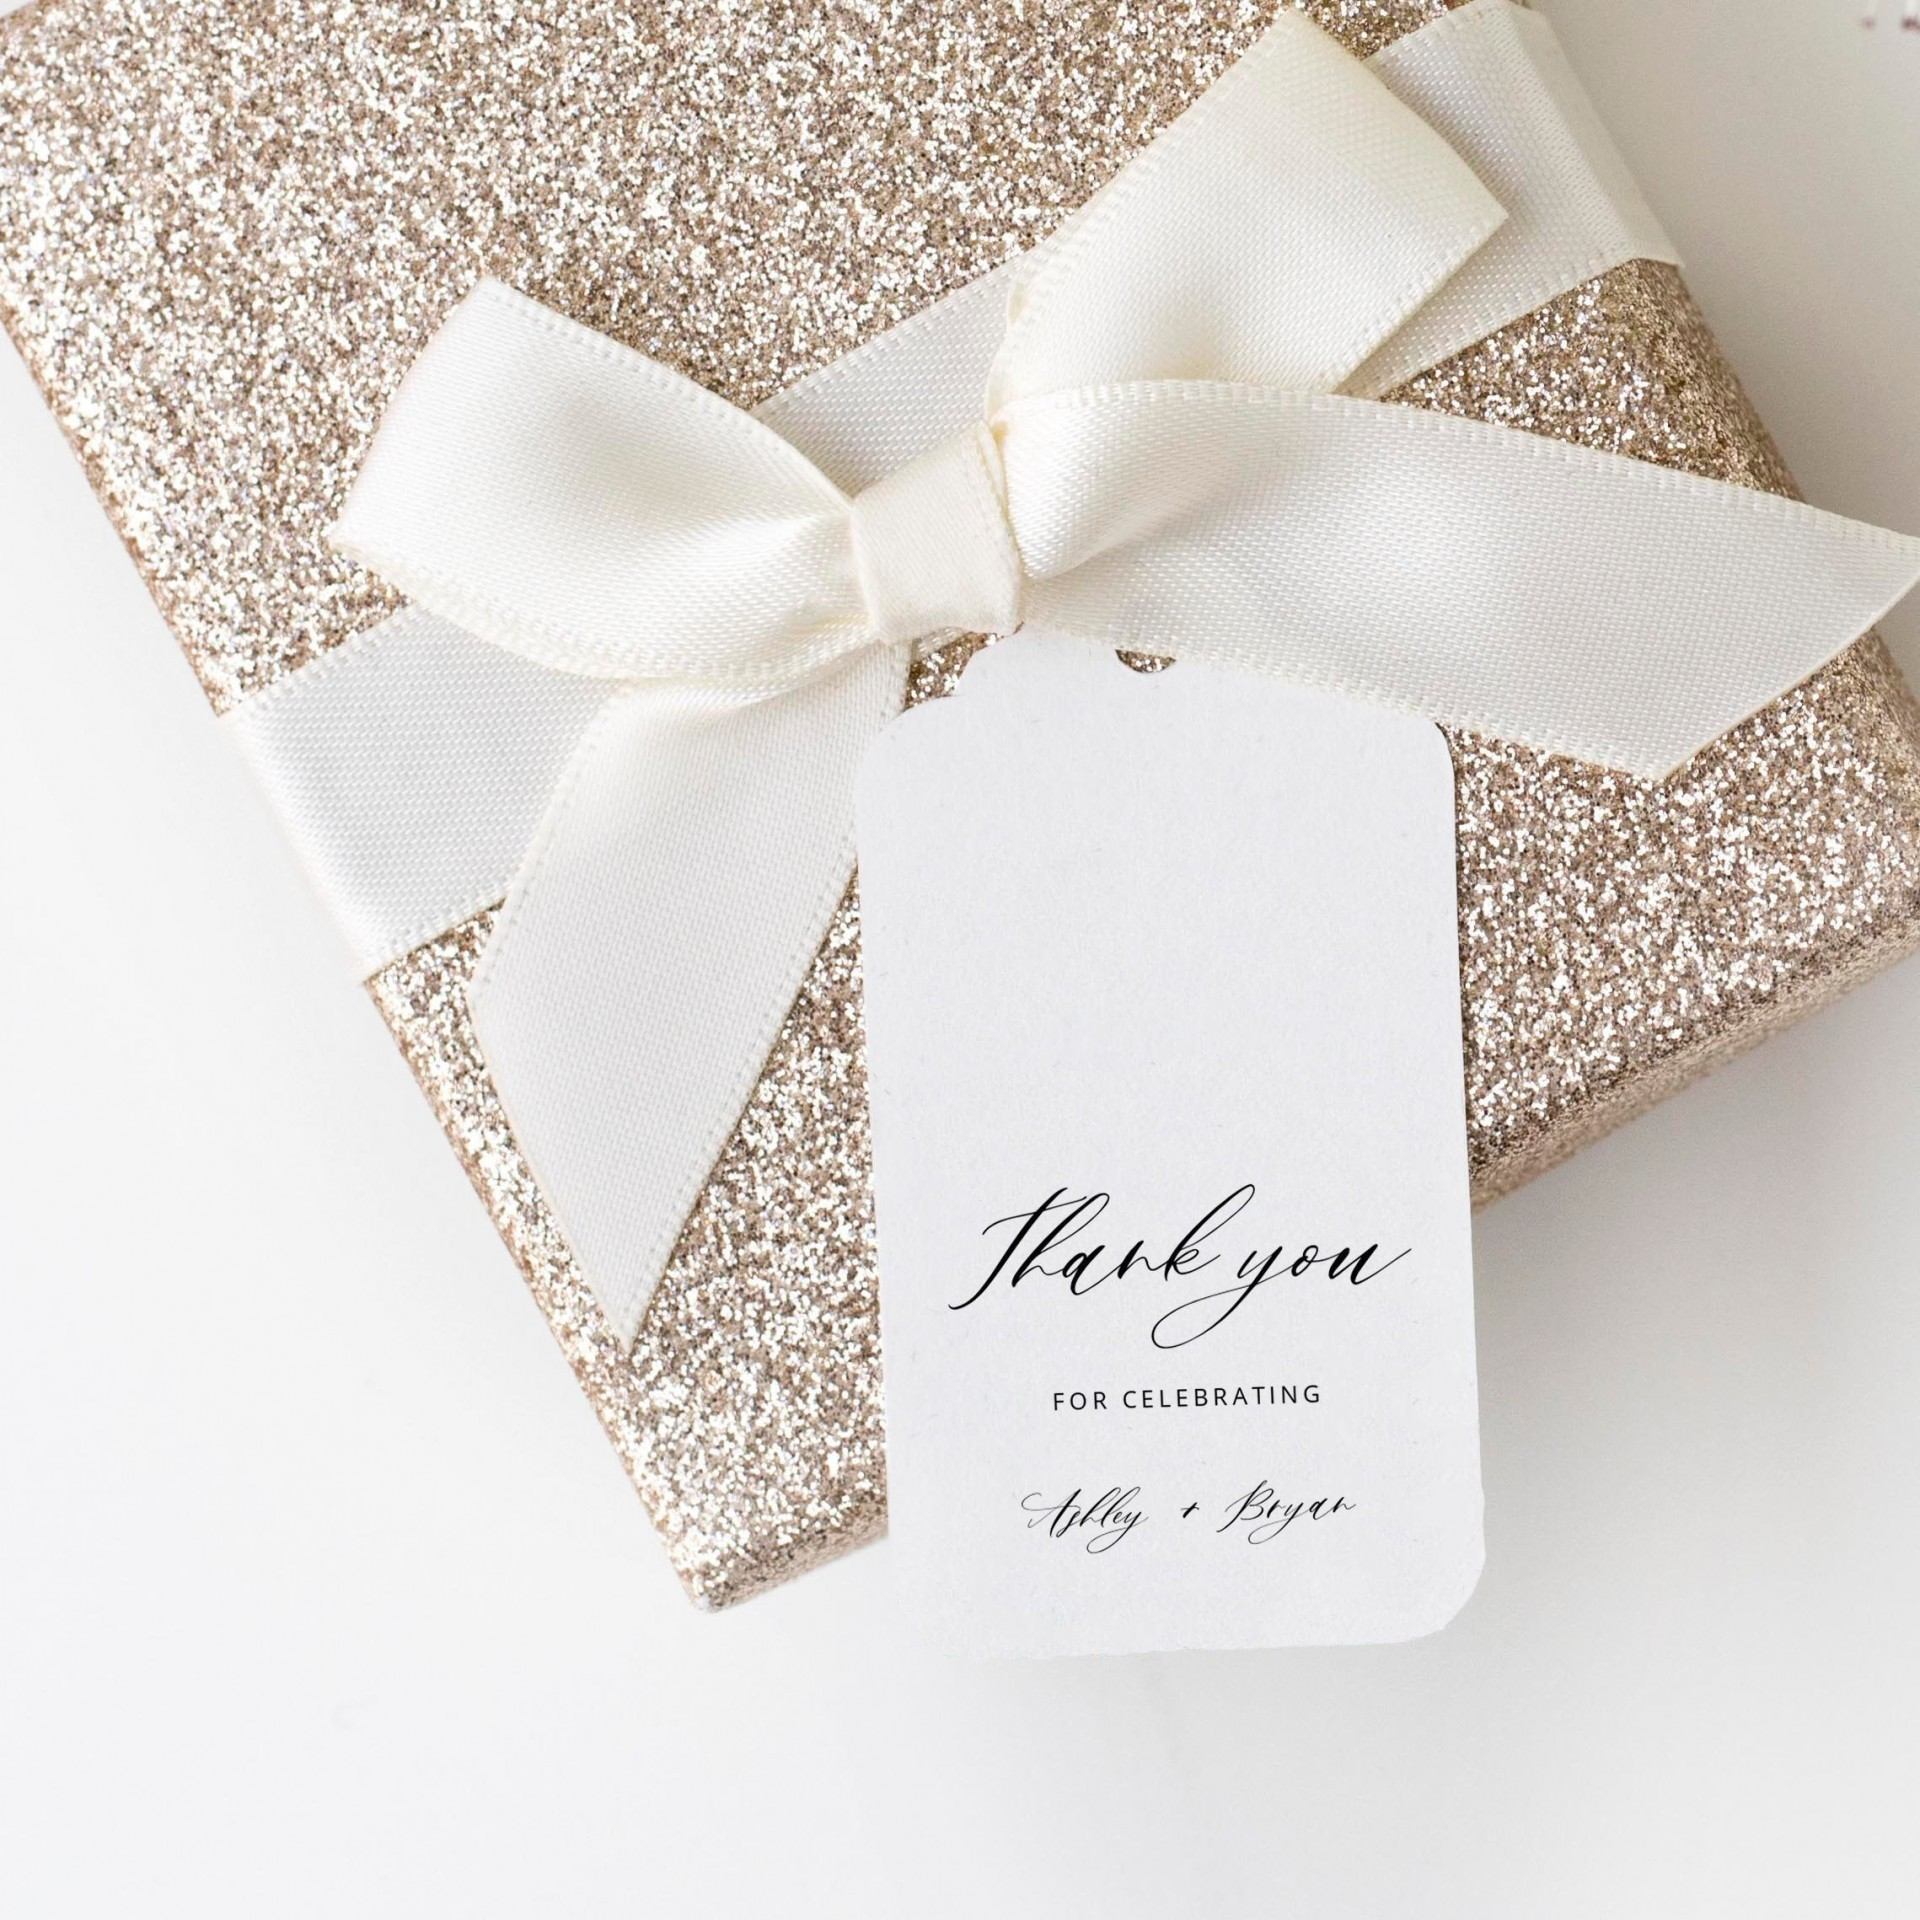 002 Dreaded Wedding Favor Tag Template Highest Quality  Templates Editable Free Party Printable1920